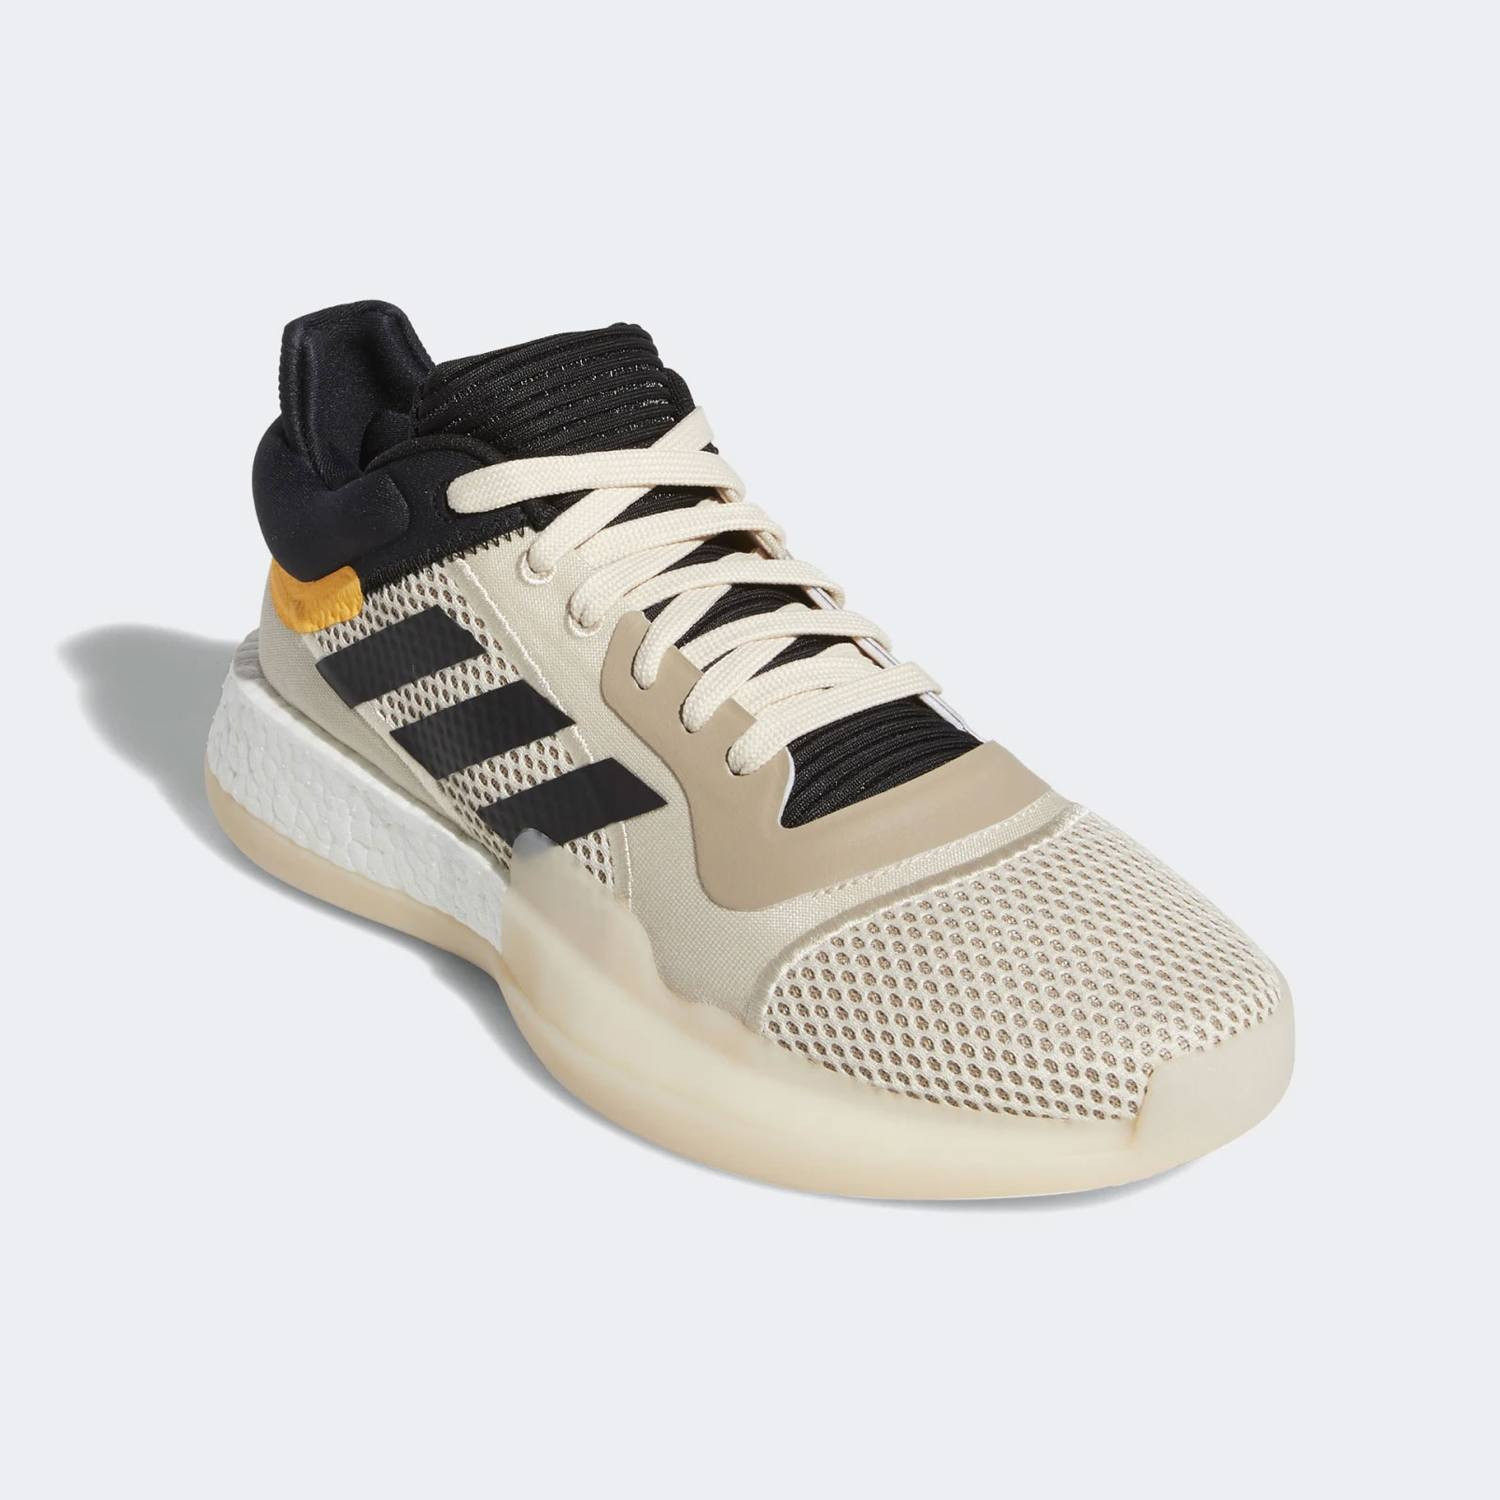 adidas Marquee Boost Low - Μπασκετικά Παπούτσια